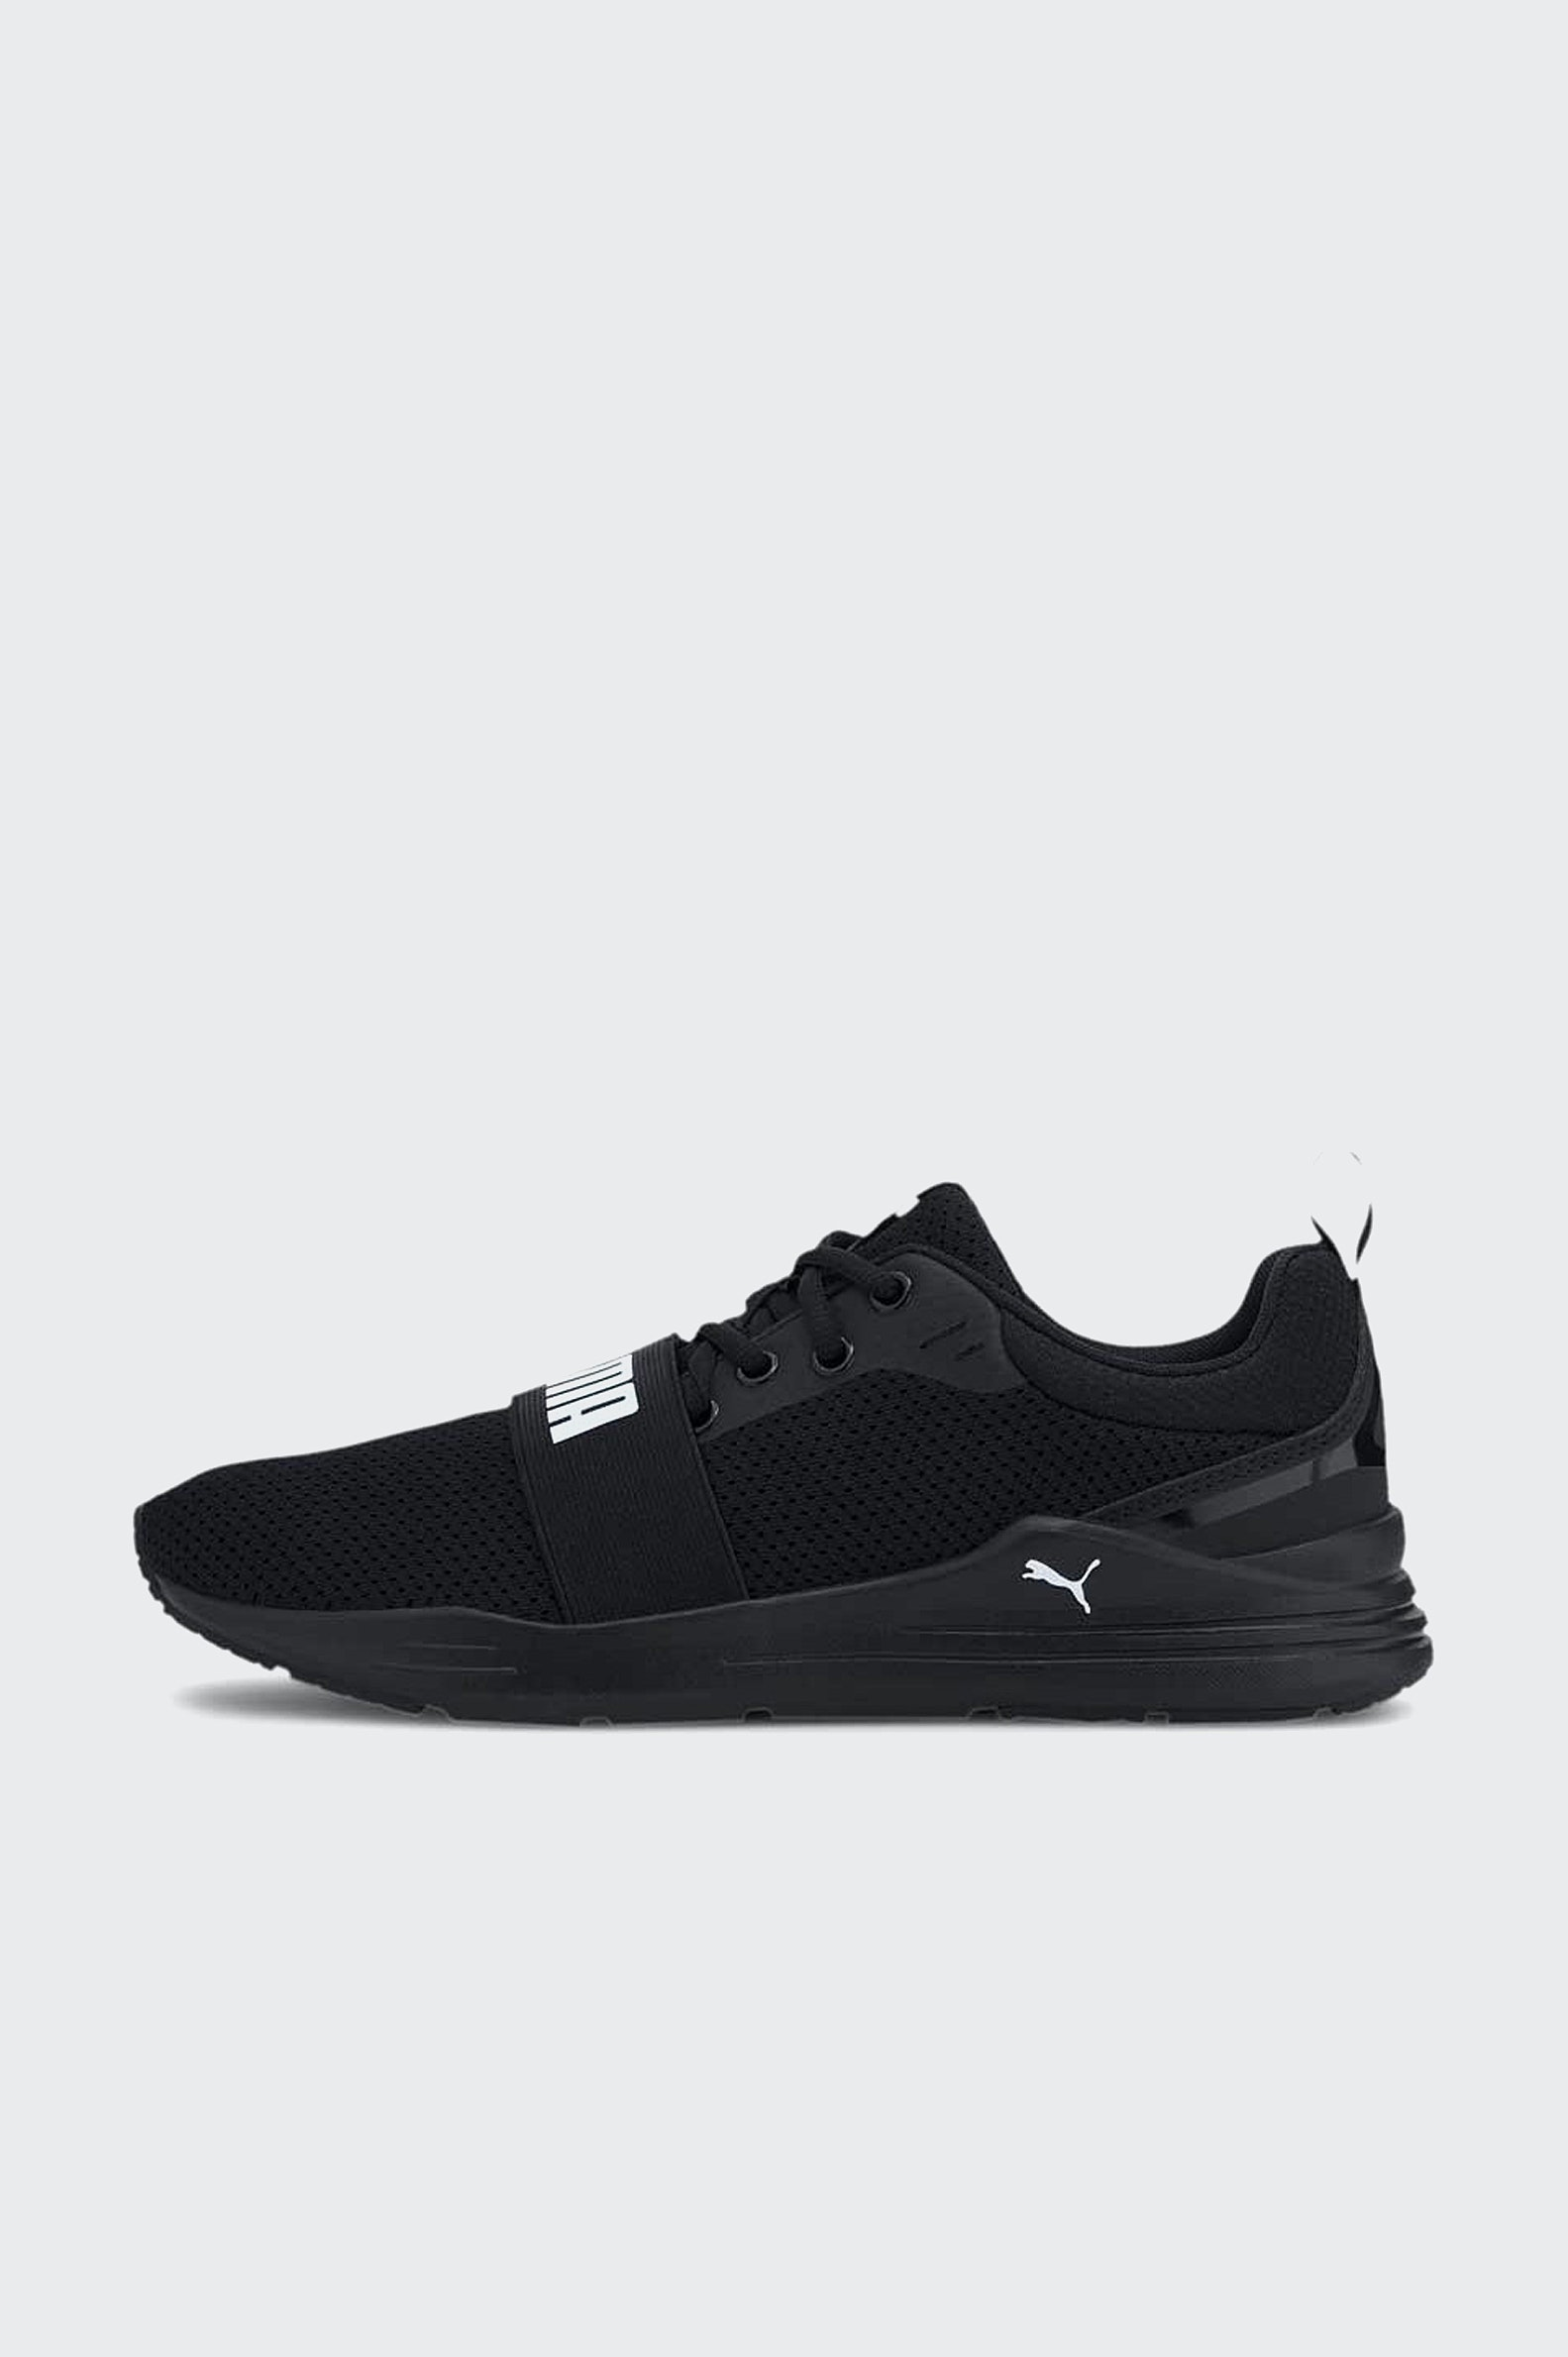 CHAUSSURES MODE PUMA WIRED HOMME